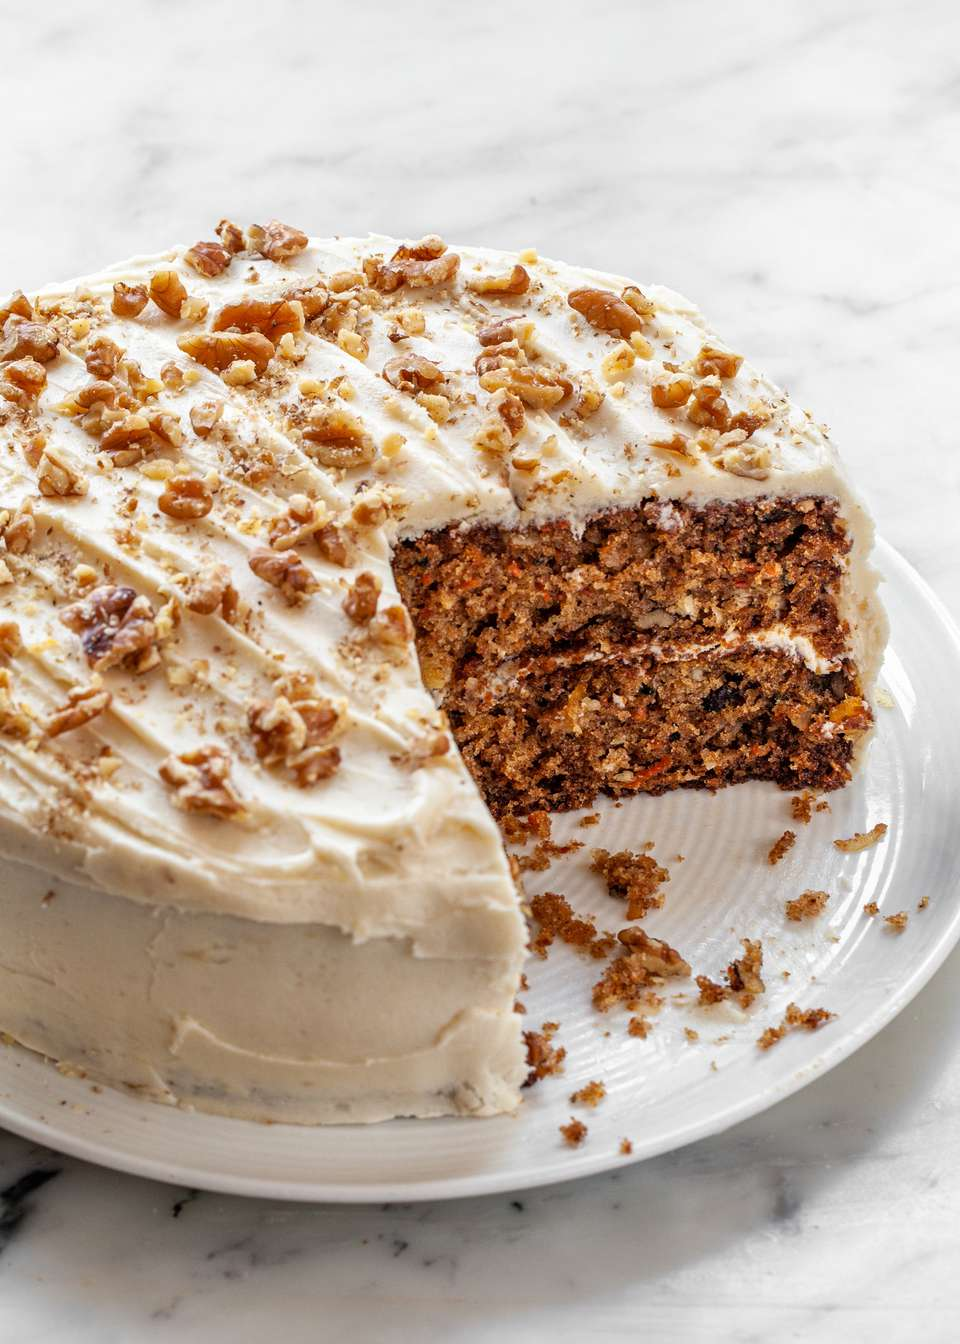 The best carrot cake recipe with a slice removed from the layered cake.